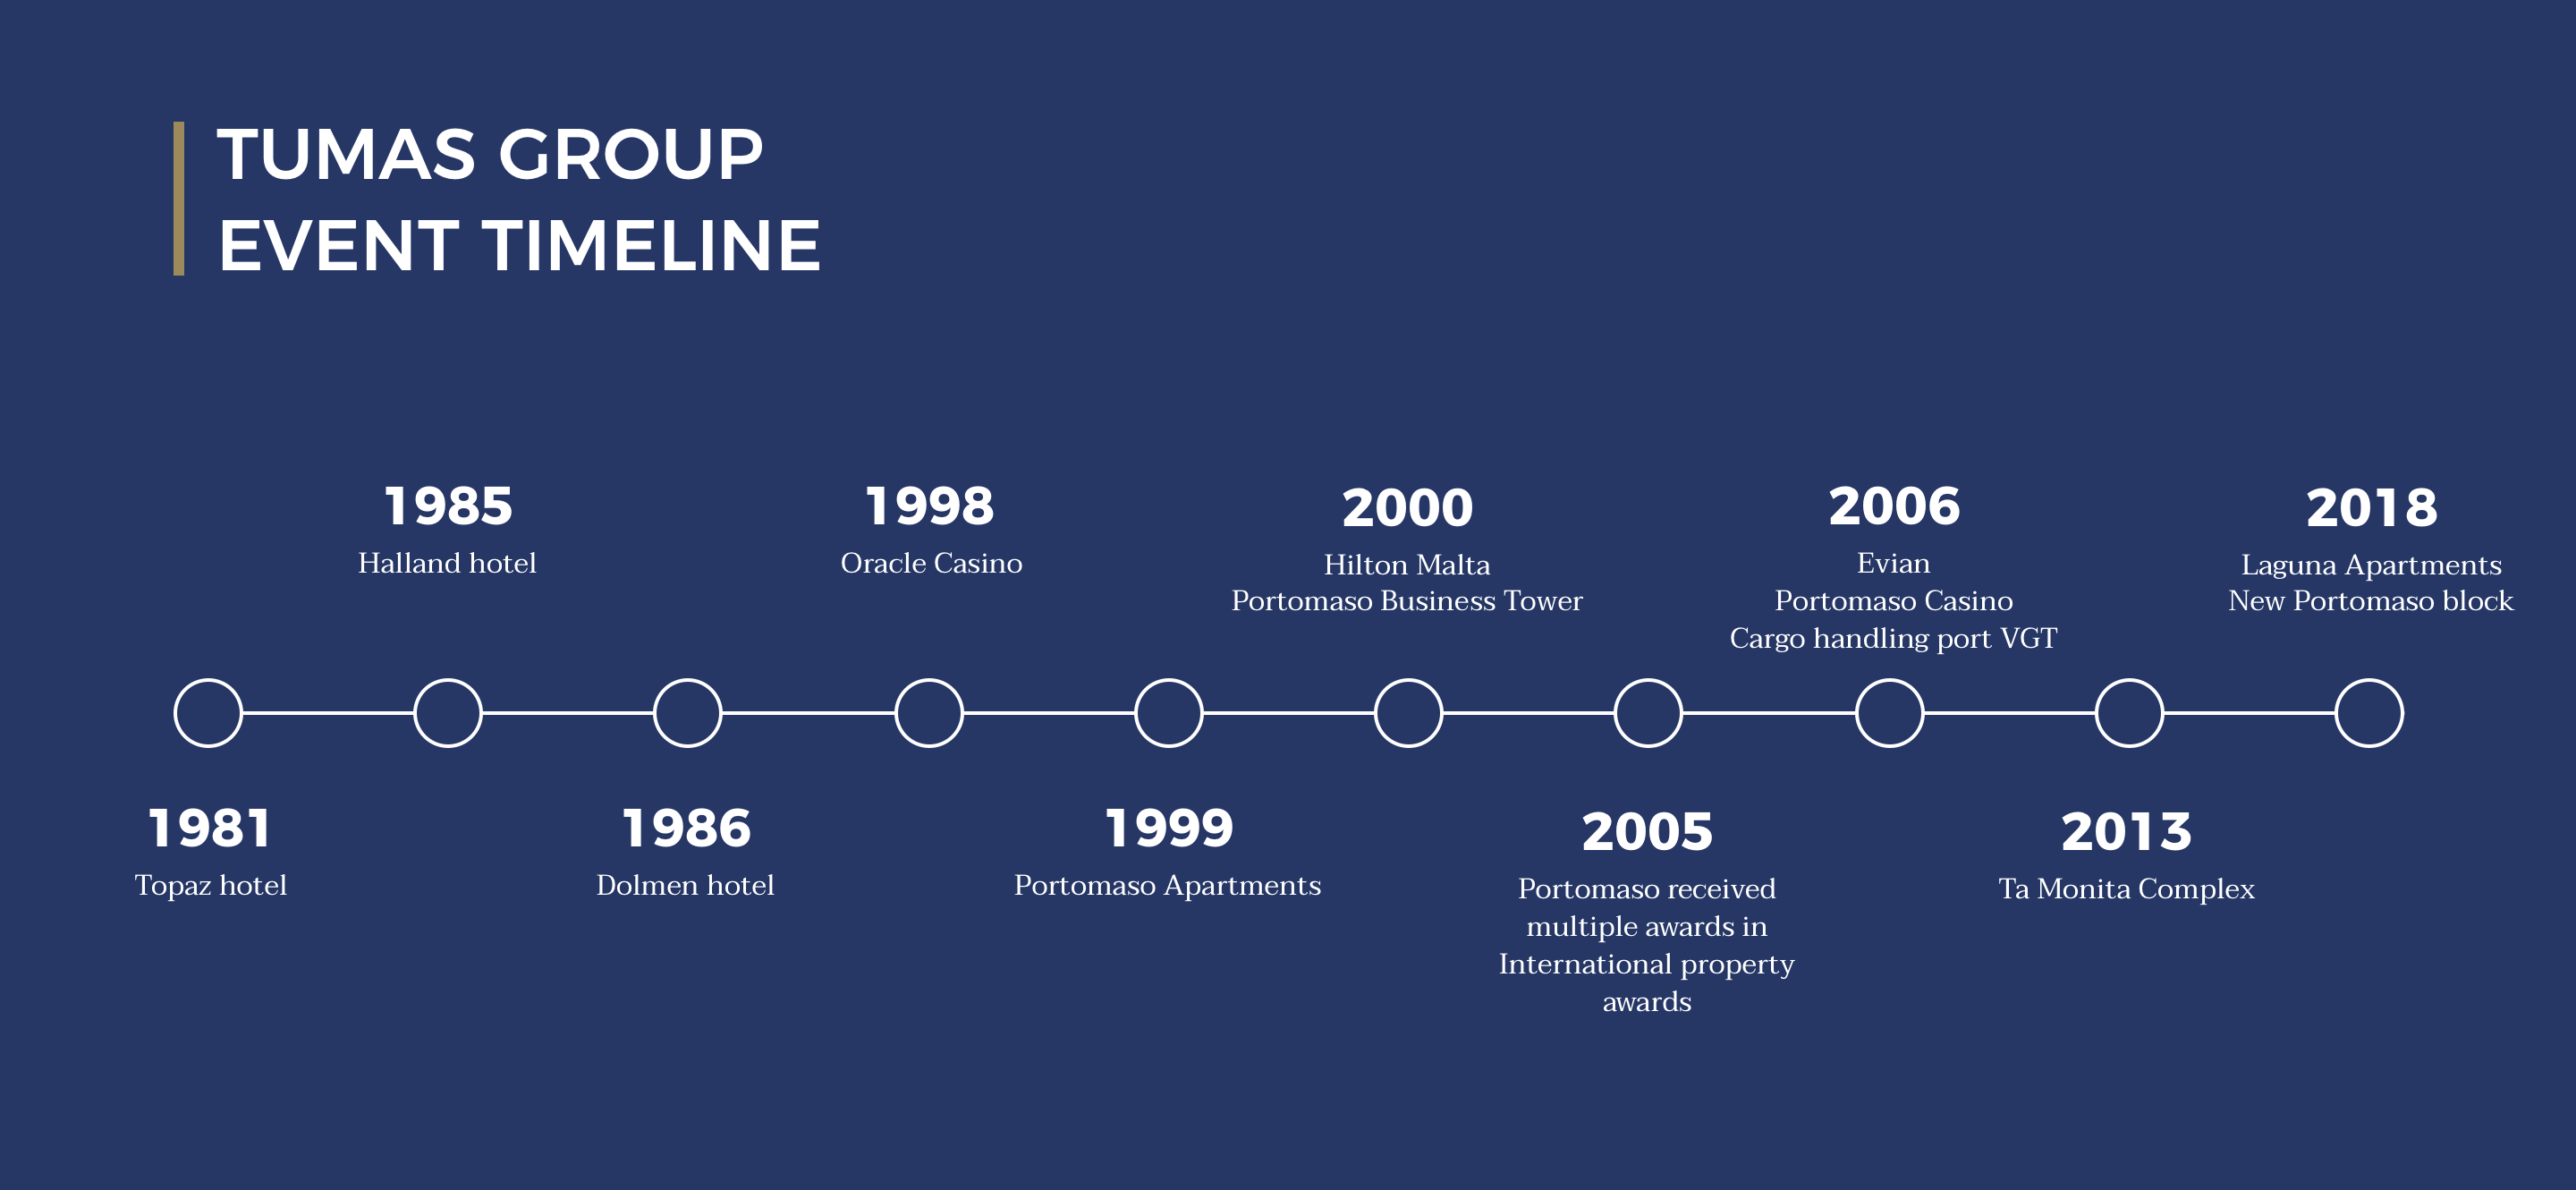 Tumas Group timeline UPDATE